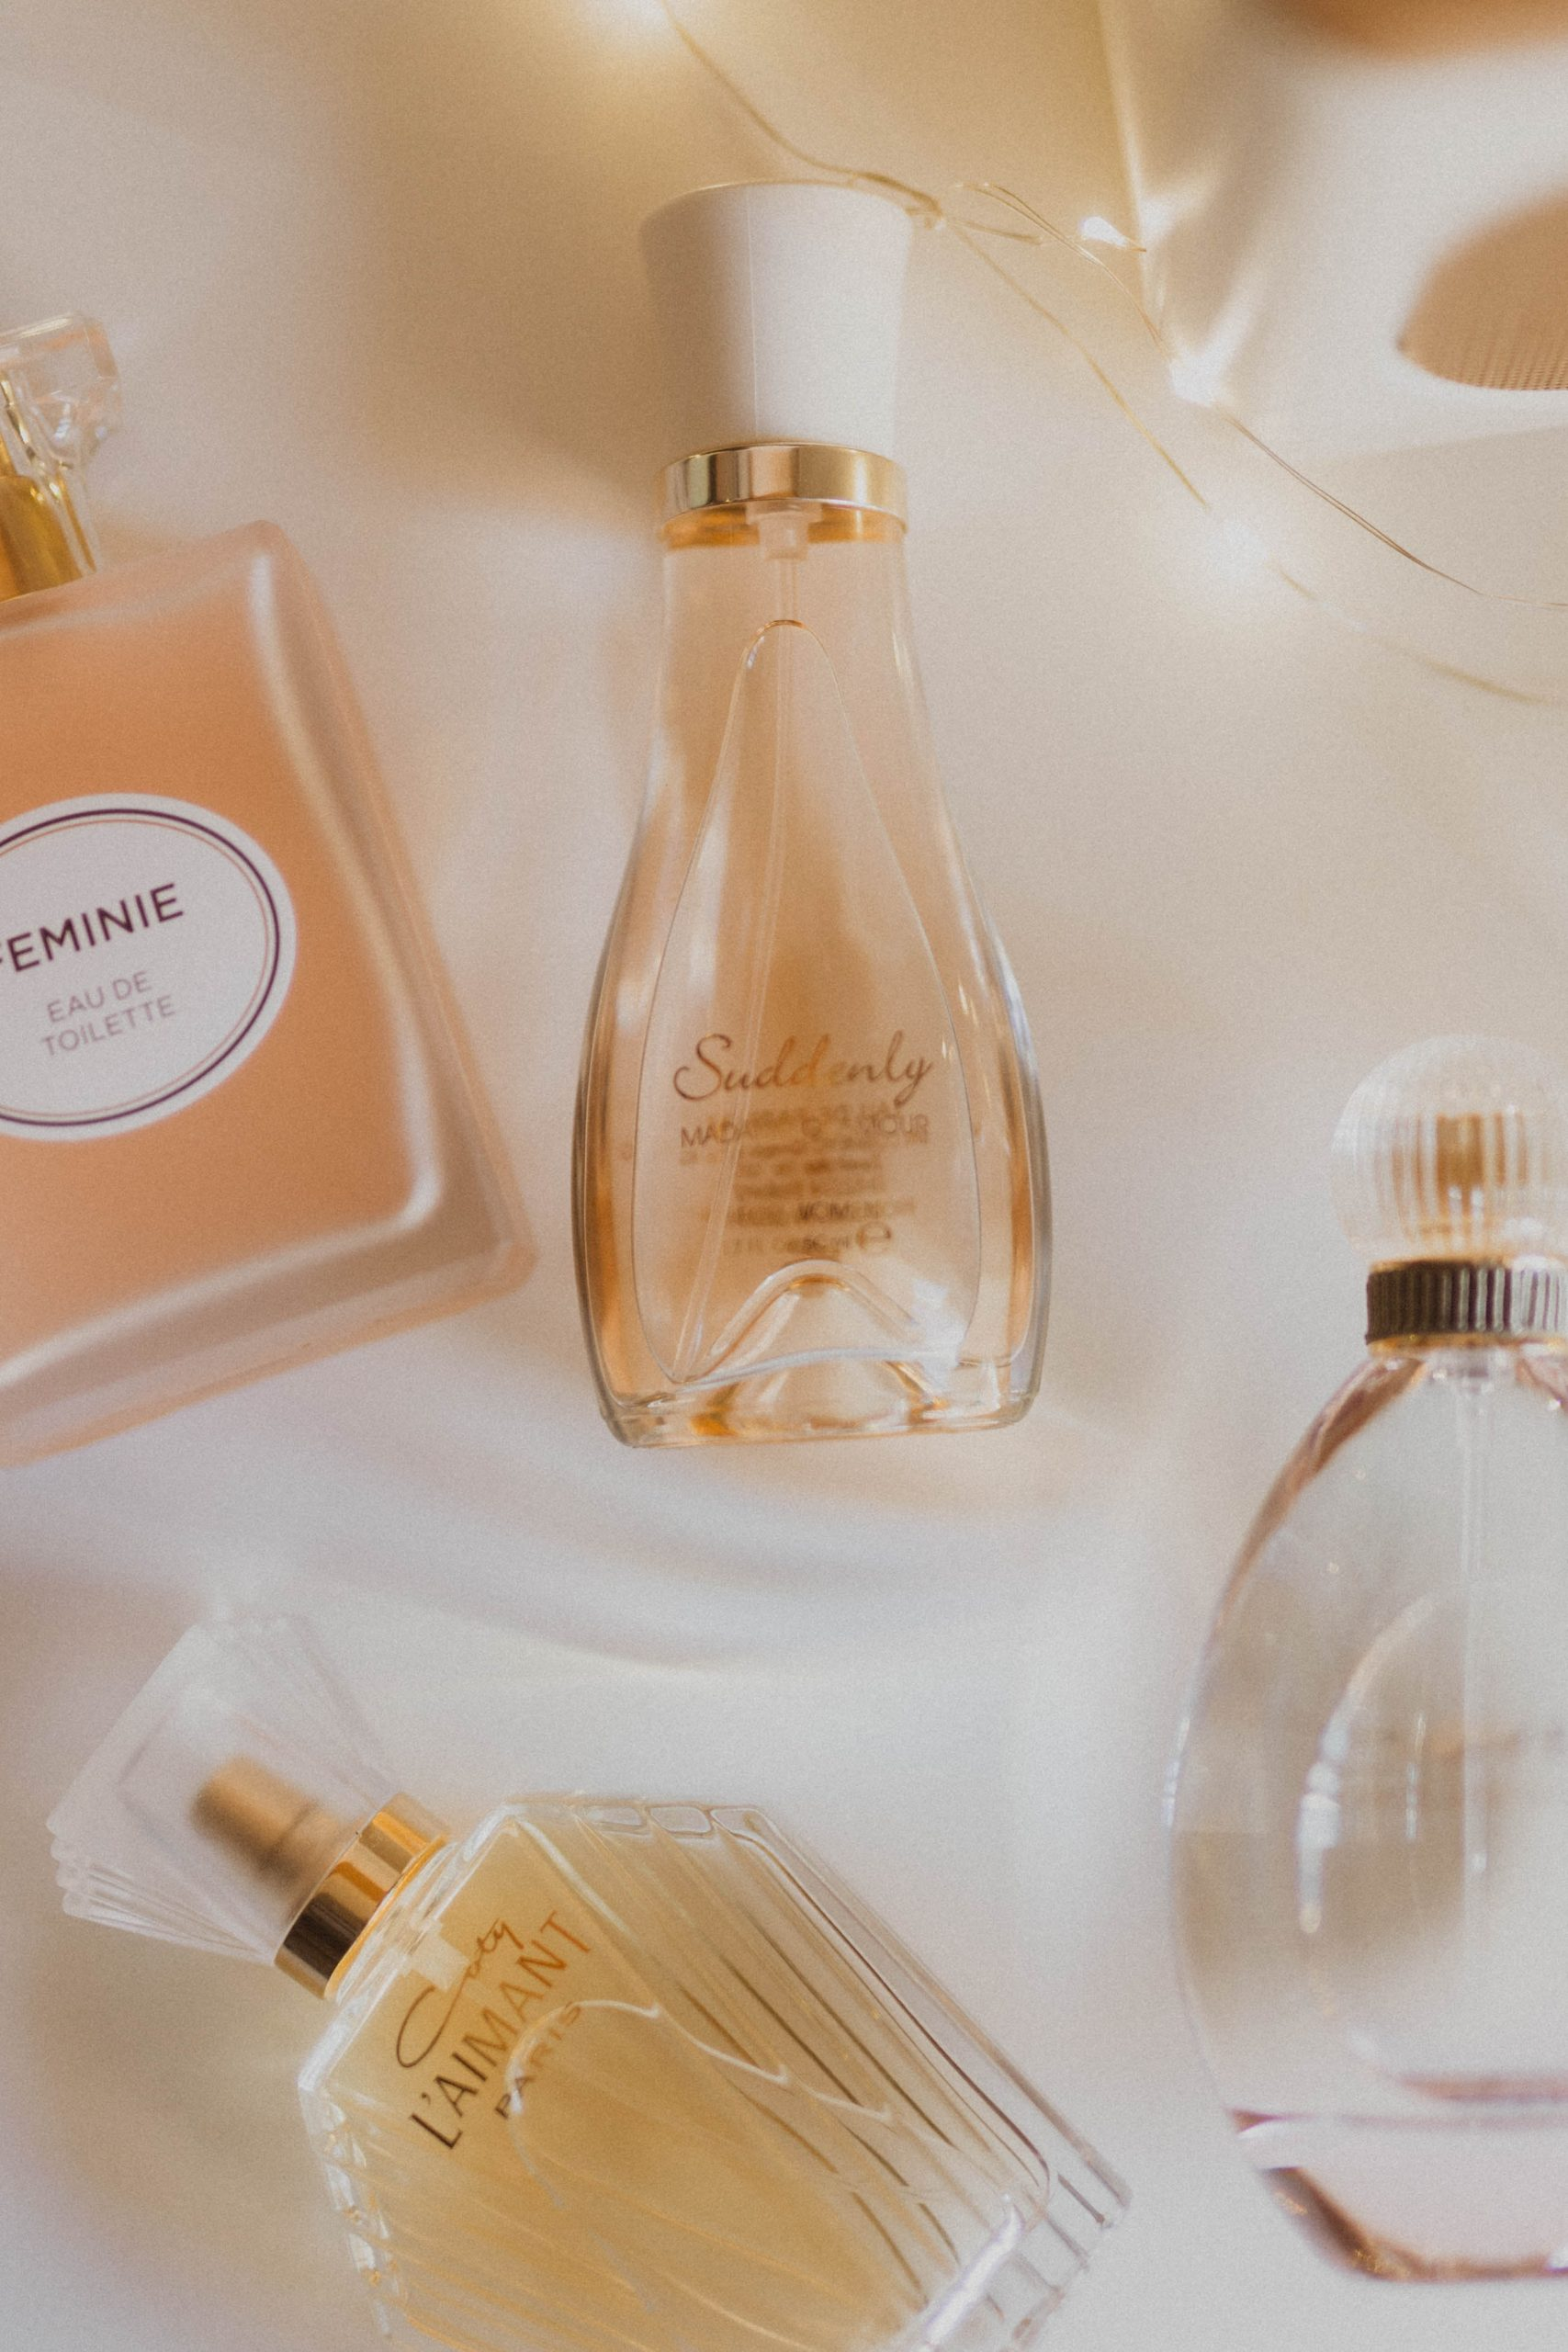 cheap perfumes, UK affordable fragrances, Chanel Coco Mademoiselle Dupe, SJP Lovely, Jo Malone Earl Grey & Cucumber Dupe, Katie Writes,